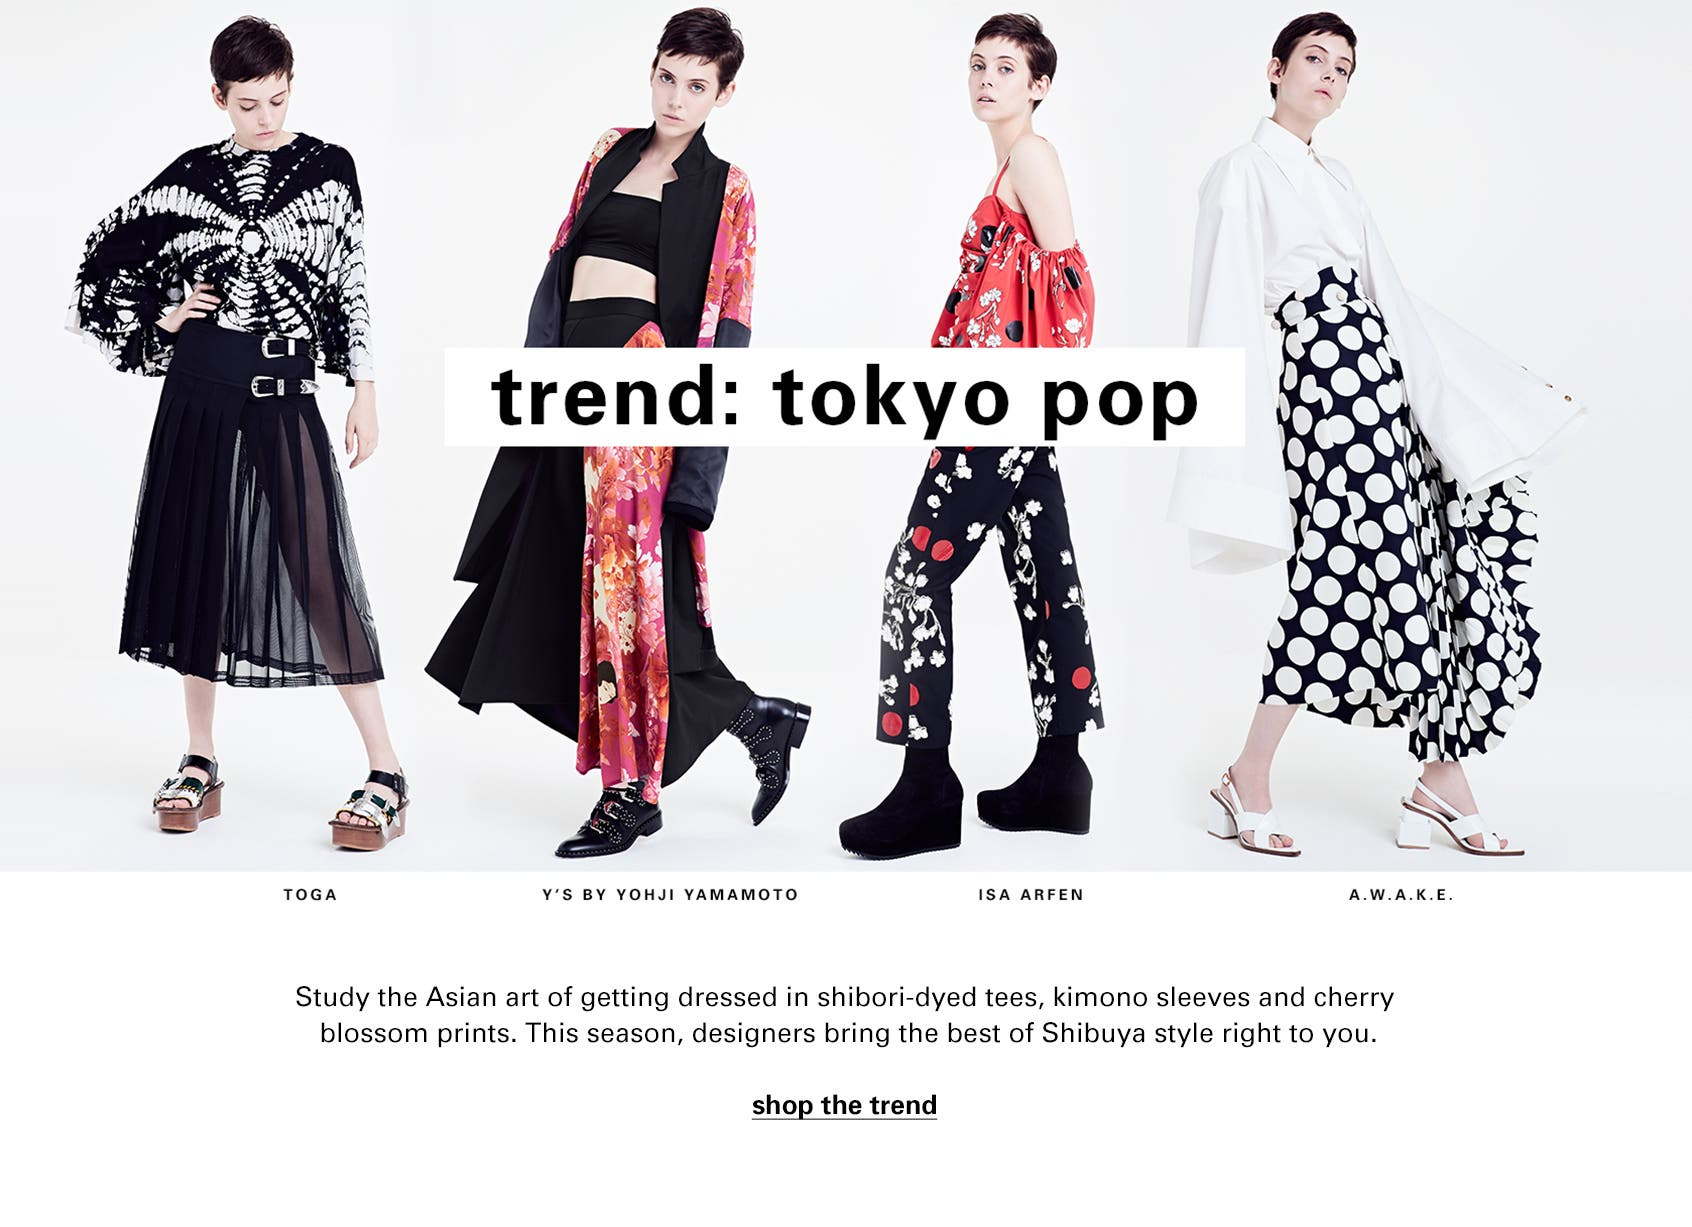 Designers bring the Tokyo Pop trend to Nordstrom SPACE with kimono sleeves, cherry blossom prints and more.